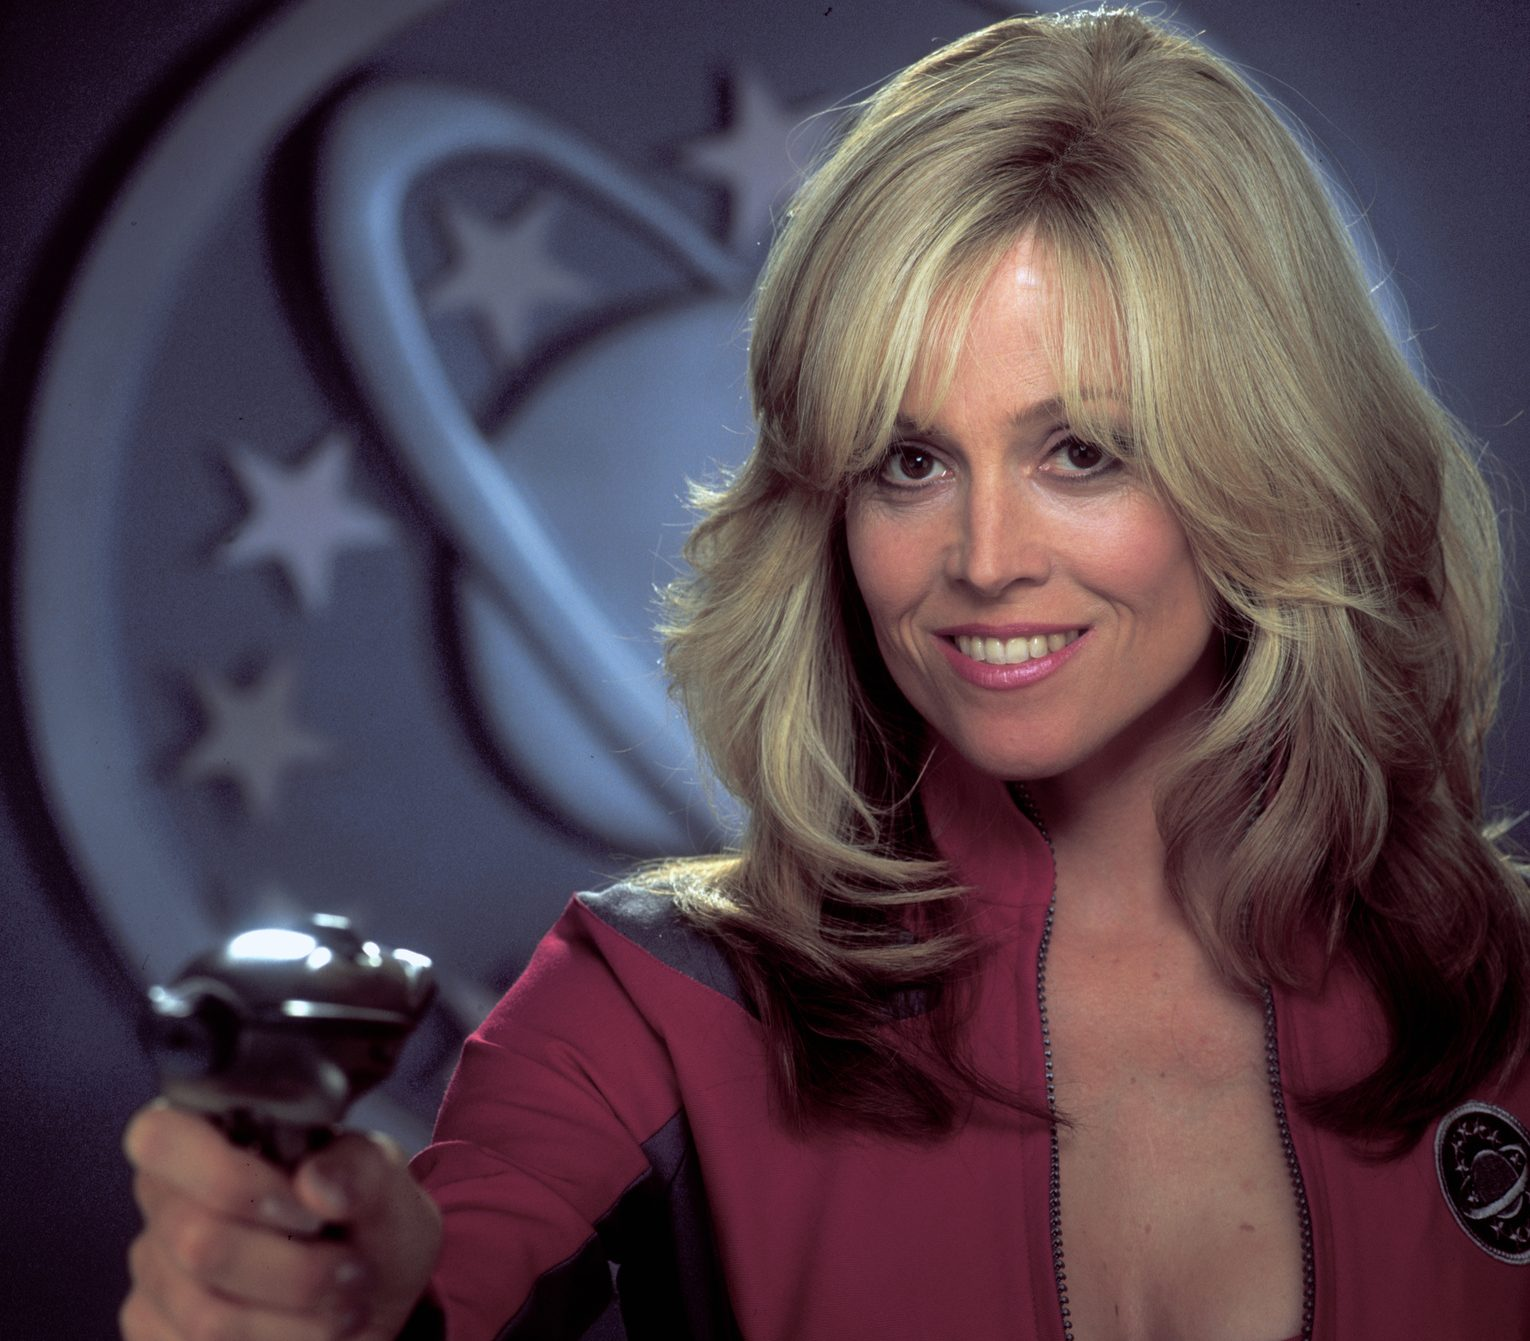 g24 e1618998574795 30 Spacefaring Facts About Hilarious Sci-Fi Comedy Film Galaxy Quest